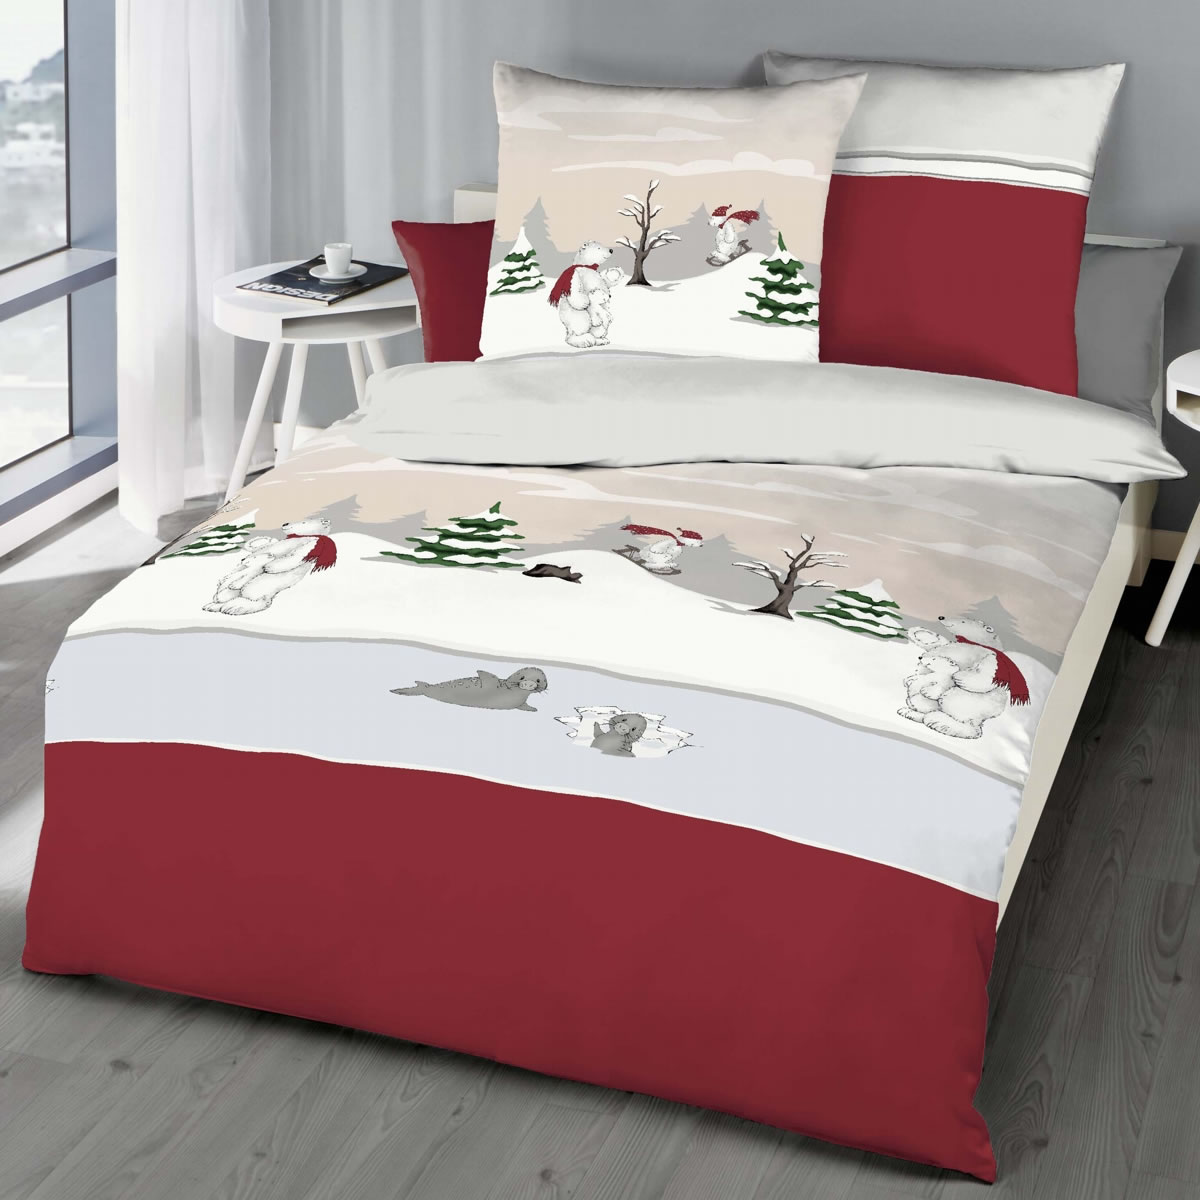 kaeppel biber bettw sche 155x220 cm design 6252 eisb r rot. Black Bedroom Furniture Sets. Home Design Ideas